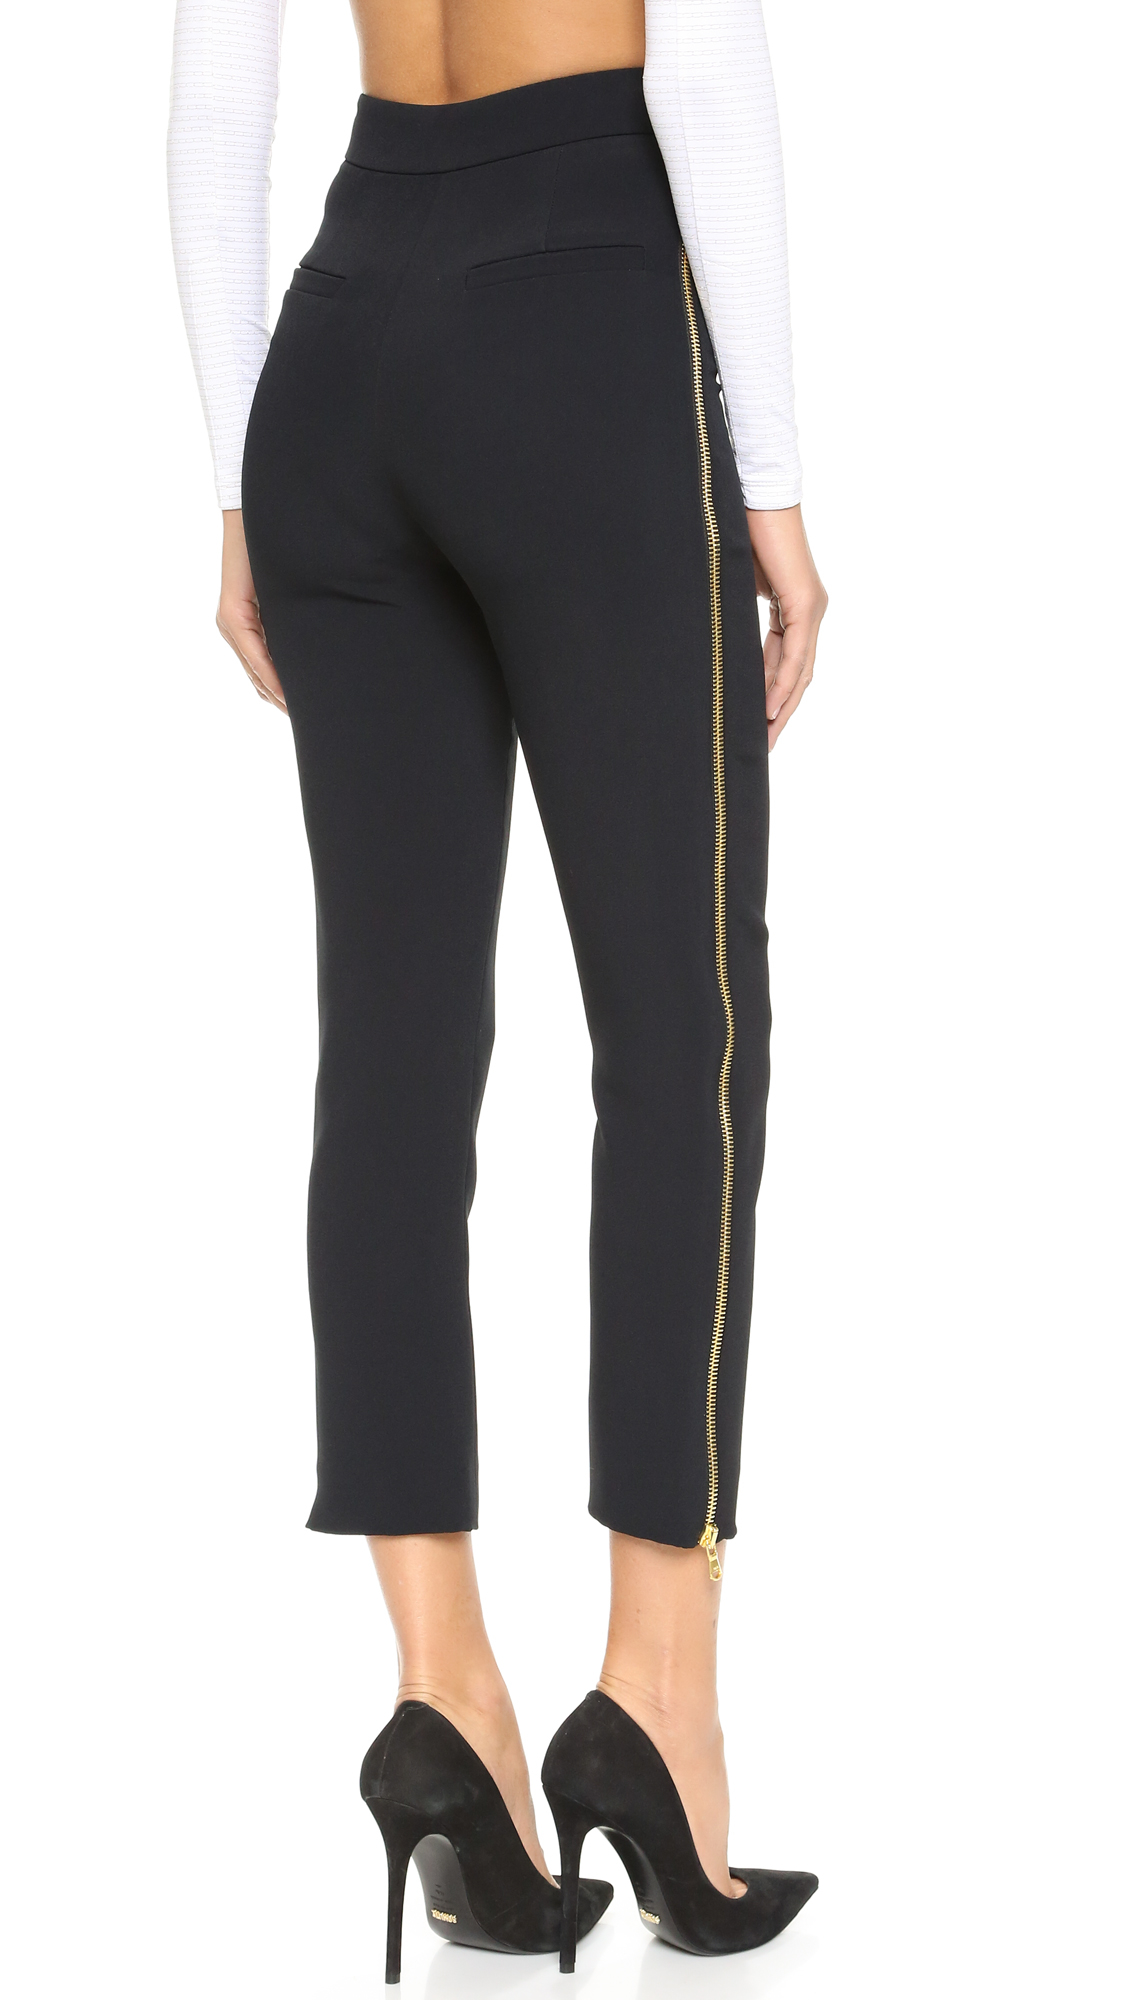 Straight Leg Side-Zip Pants: The secret to comfort is in our smooth elastic waistband. Pants sit at the waist and have back darts for shaping.